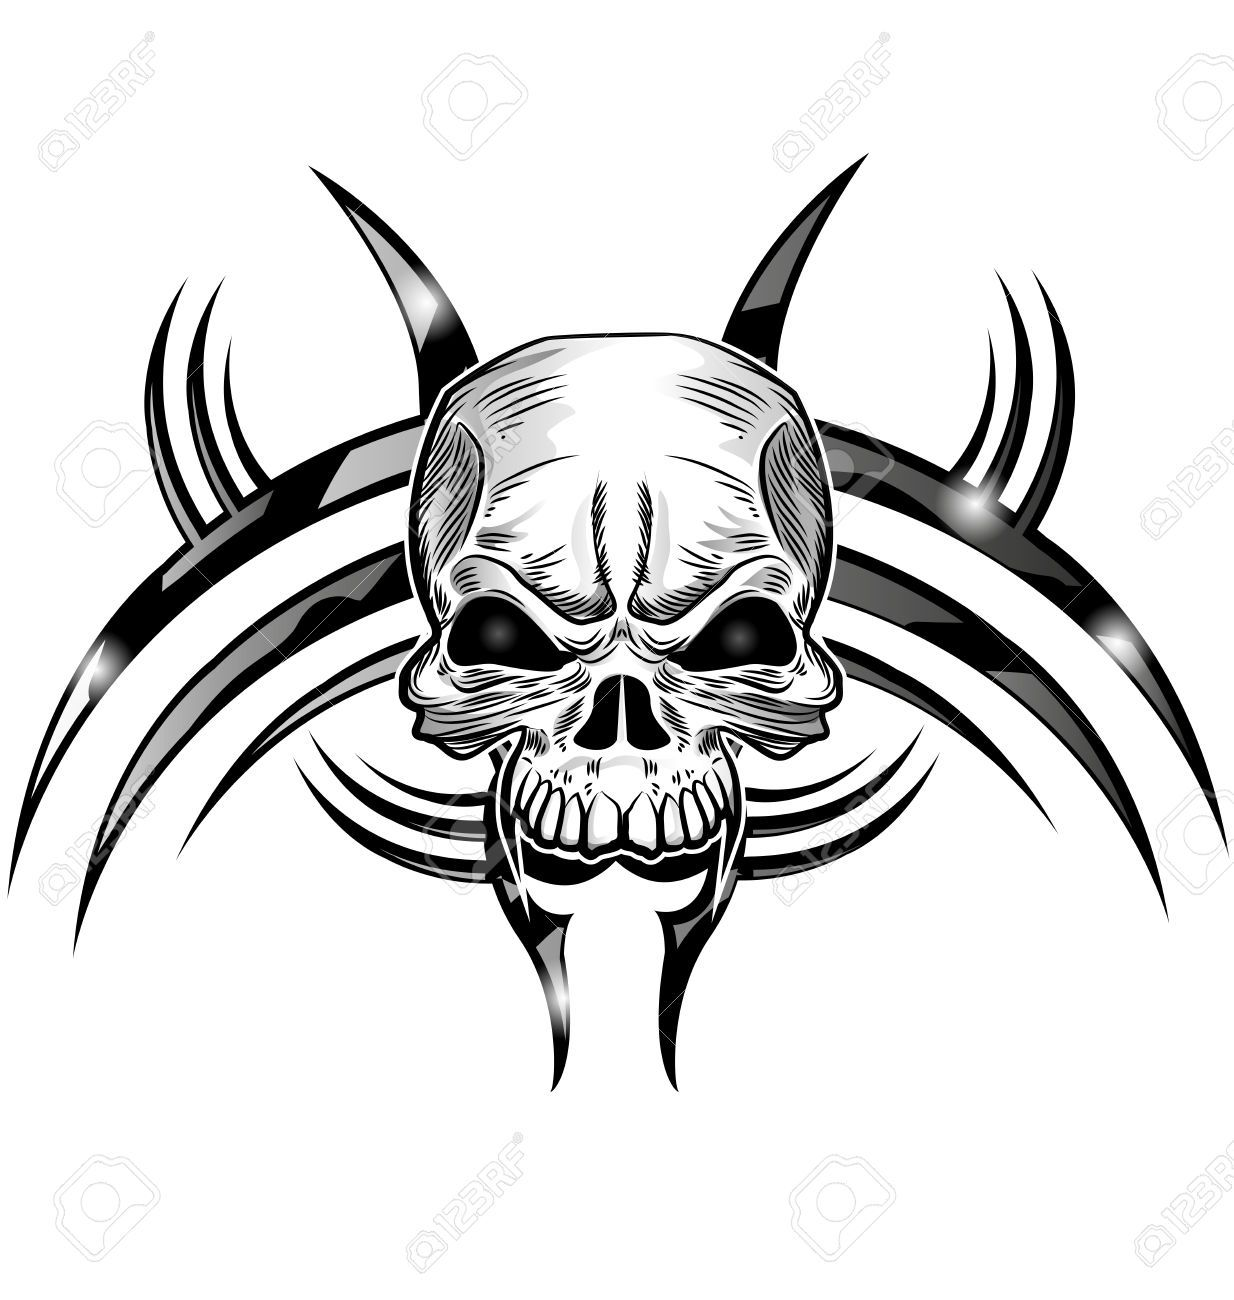 skull tattoo design isolate on white royalty free cliparts vectors and stock illustration. Black Bedroom Furniture Sets. Home Design Ideas